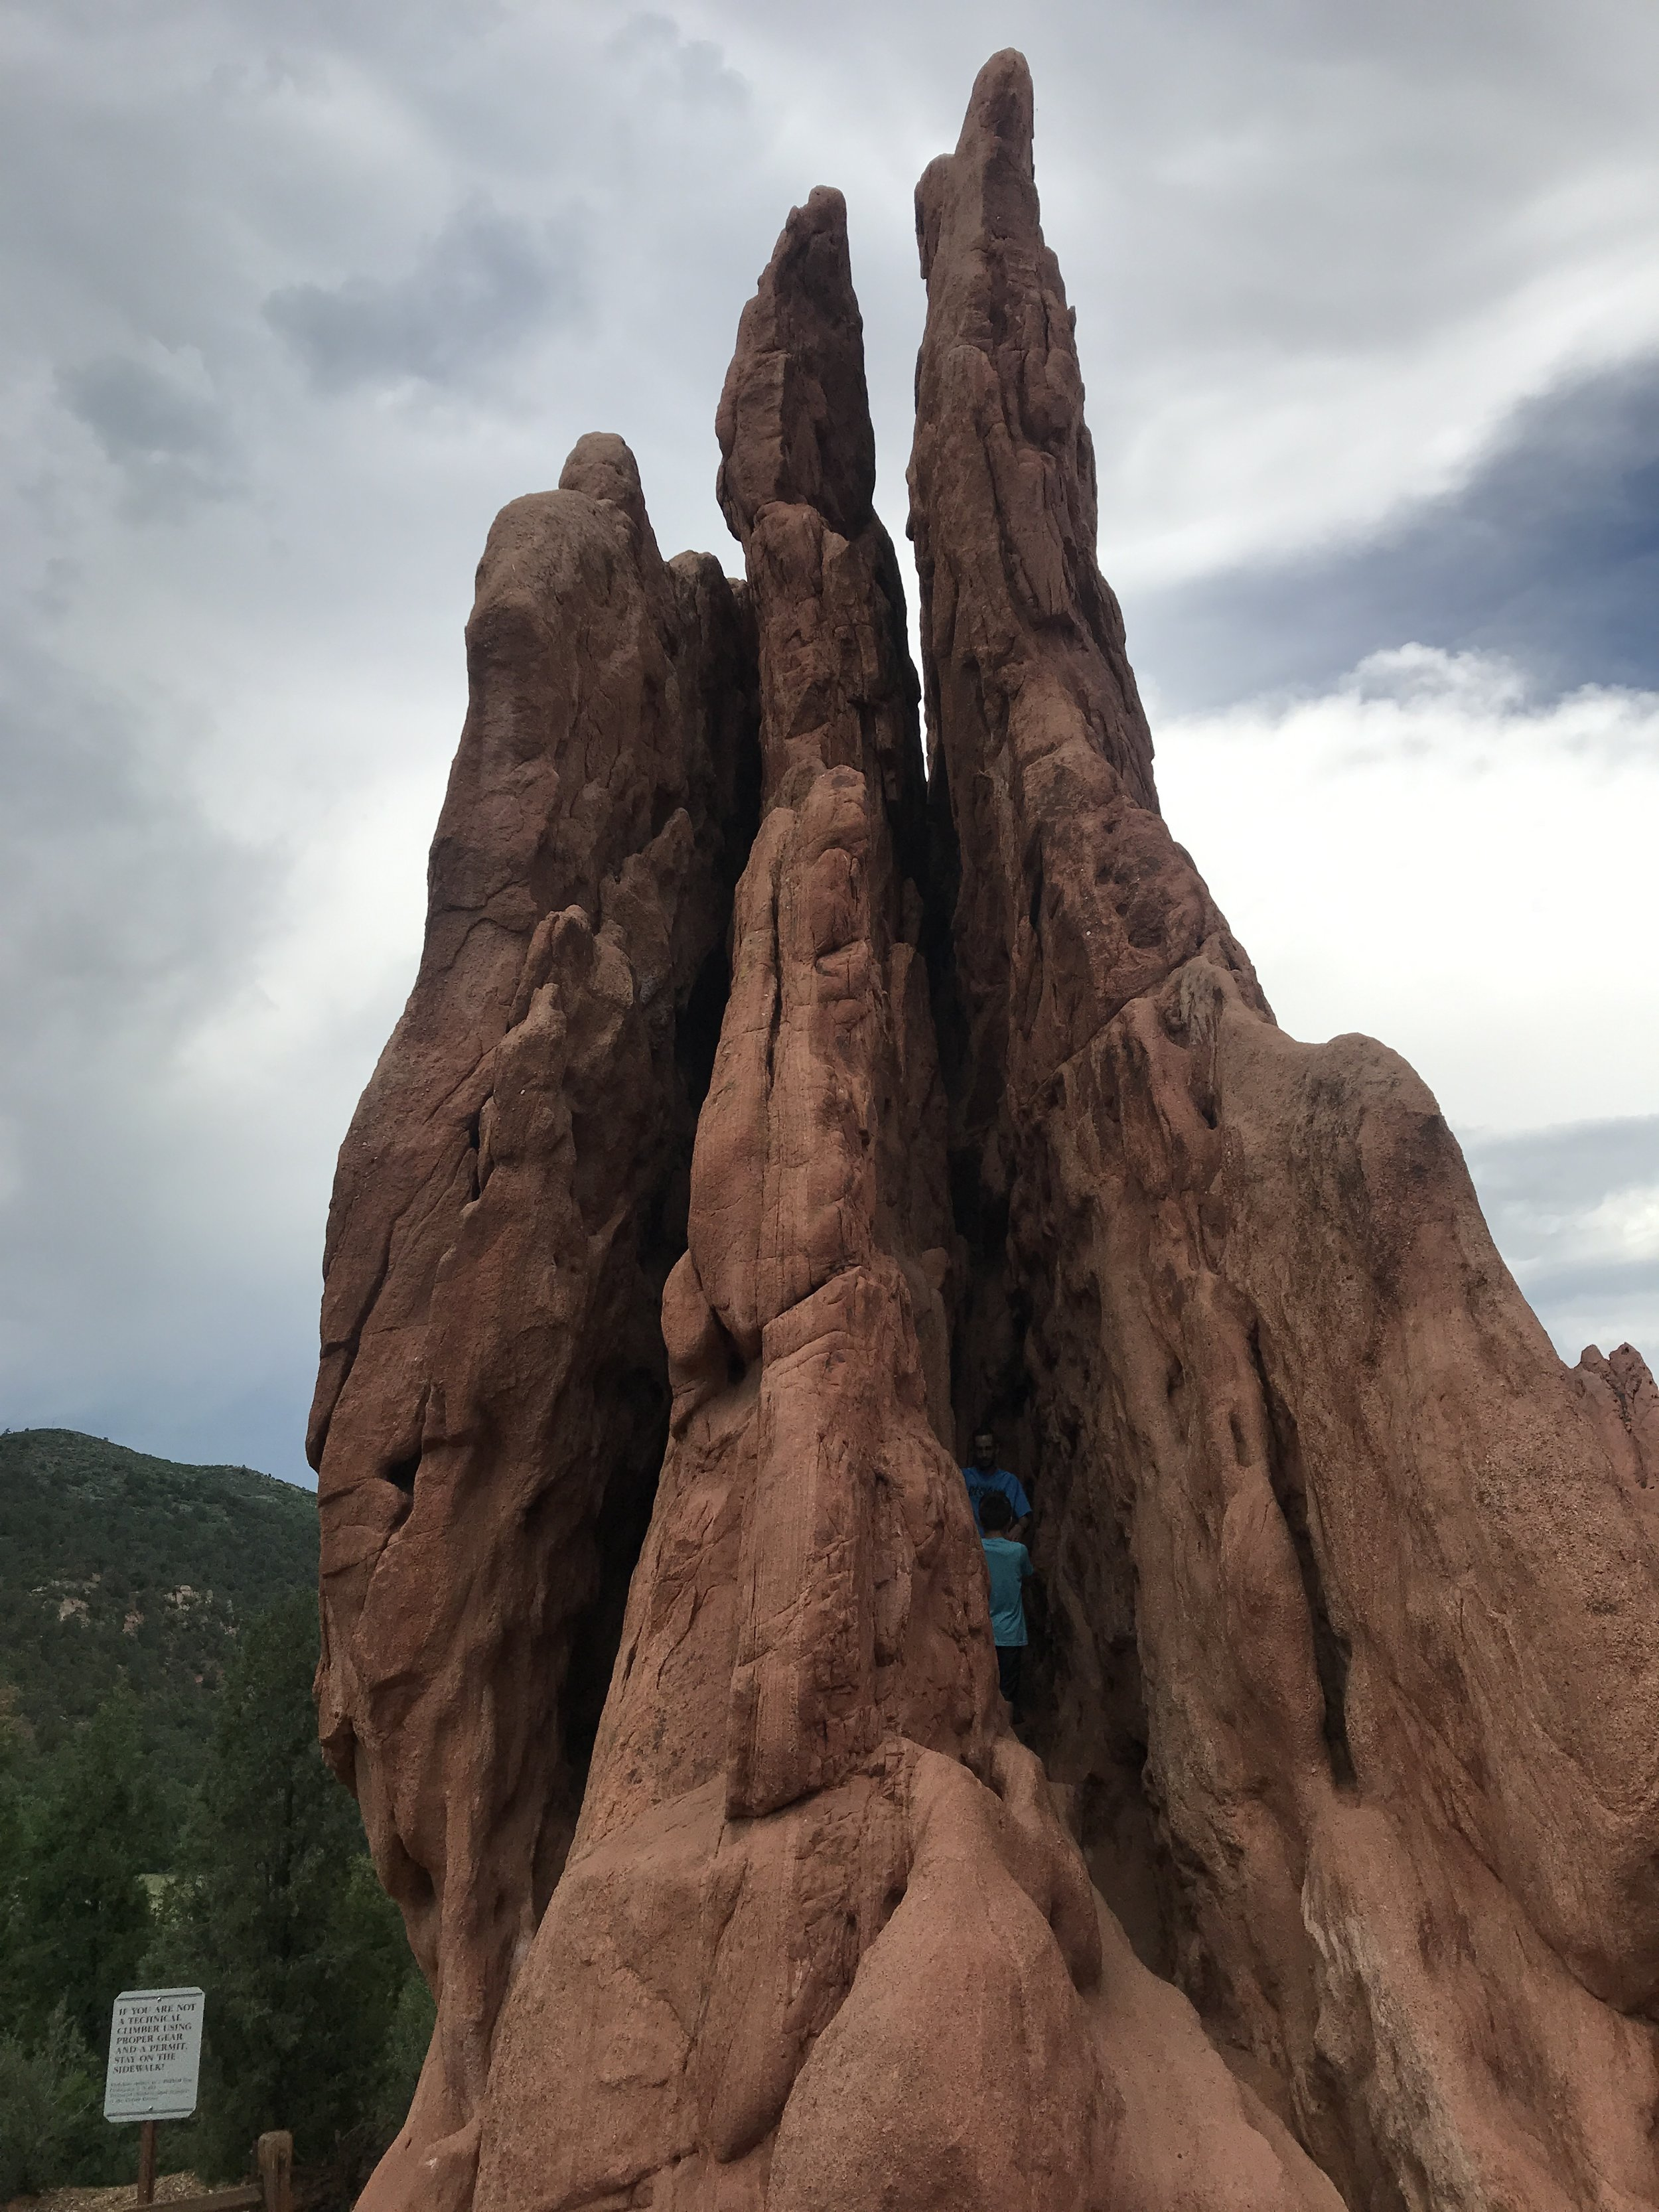 """People were climbing on some of the rocks although the sign in front said """"if you are not a technical climber using proper gear and a permit, stay on the sidewalk"""""""